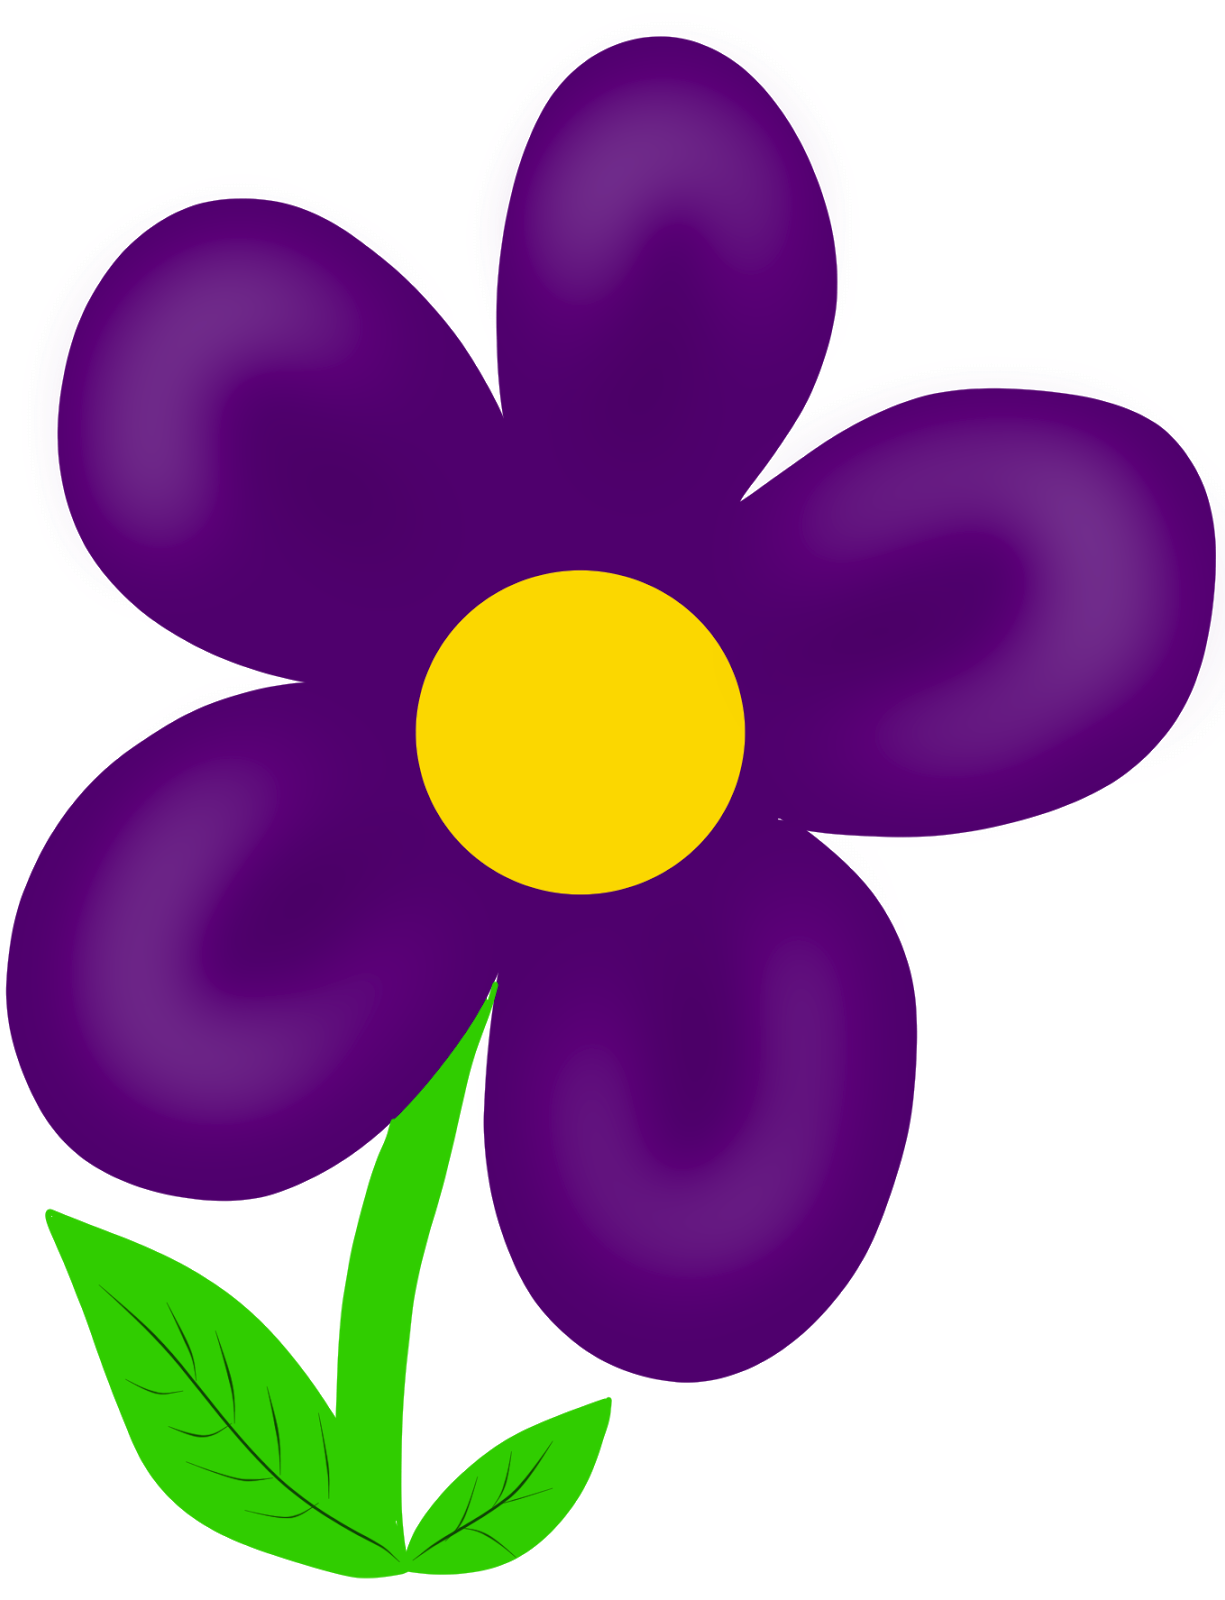 Summer Flowers Clip Art | 35 summer flowers clip art free cliparts that you can download to you ...